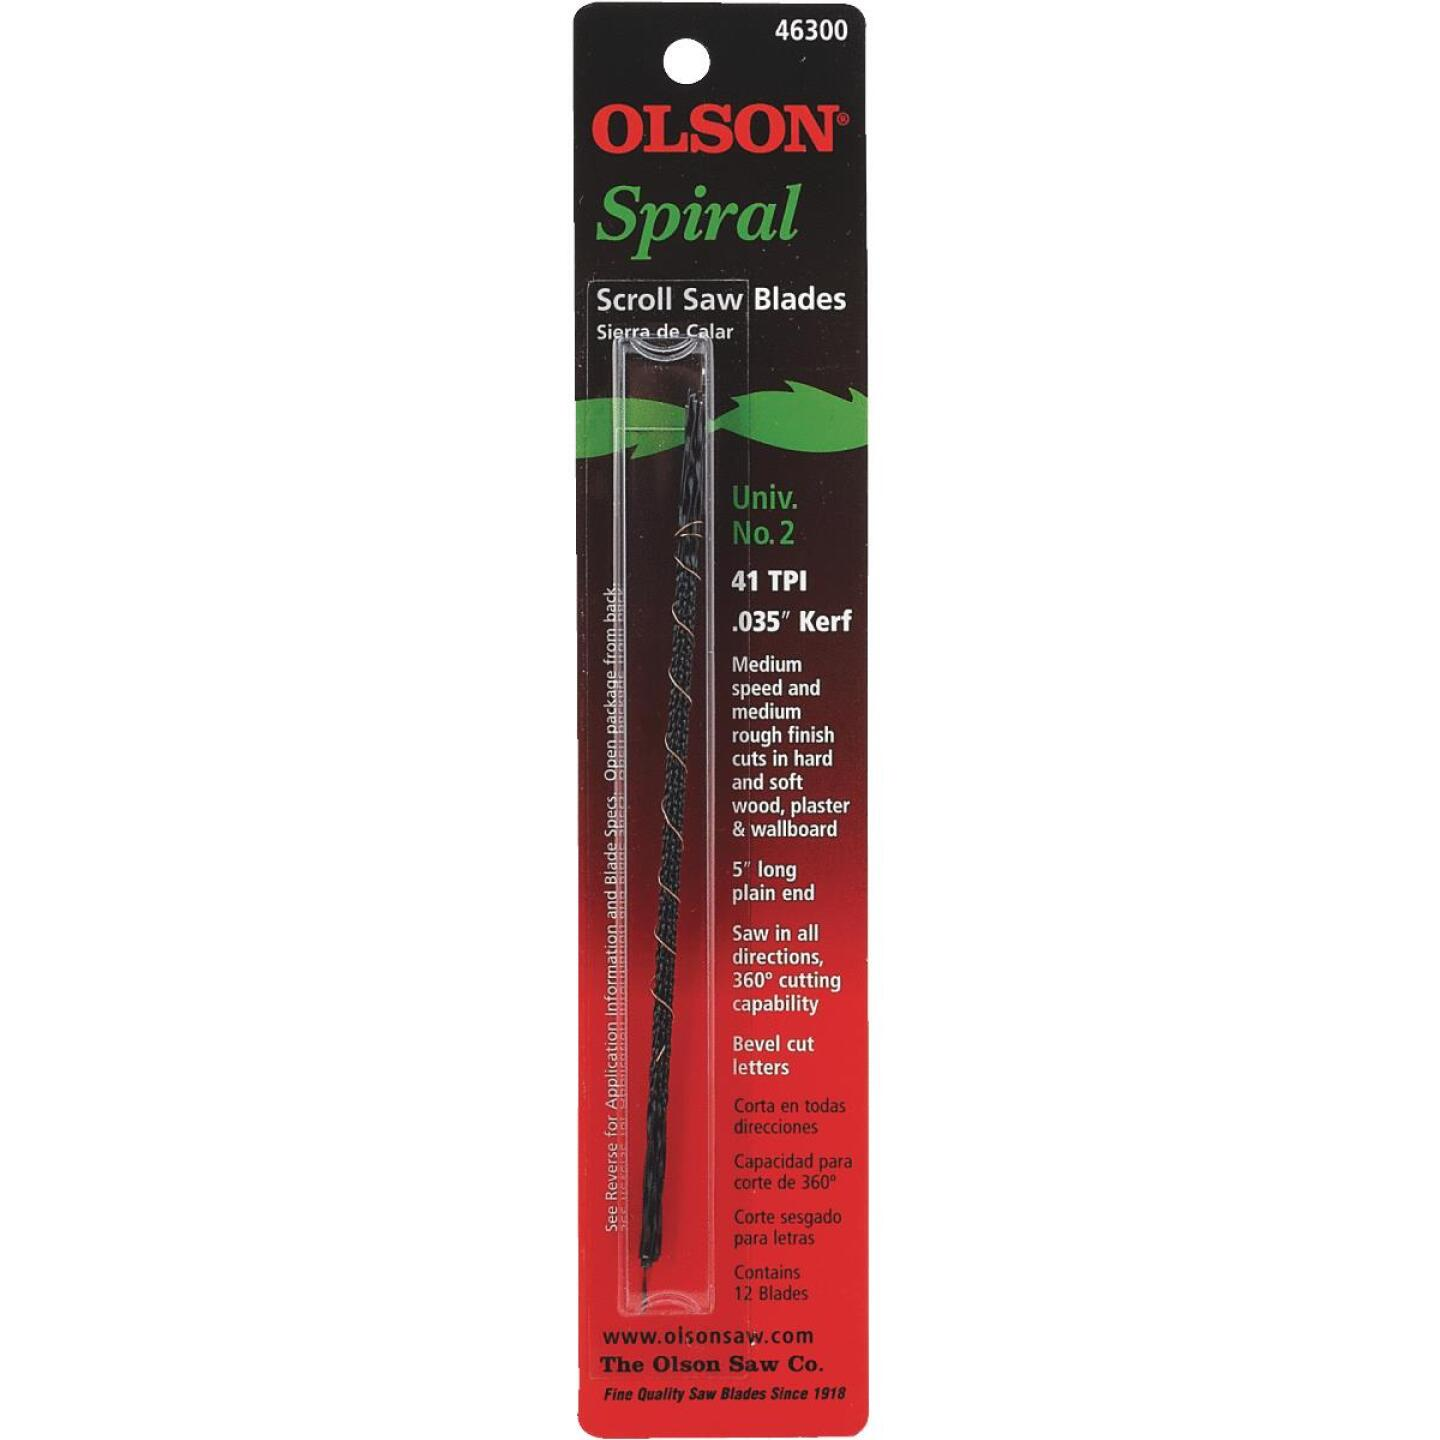 Olson 41TPI Spiral Plain End Scroll Saw Blade (12 Count) Image 2